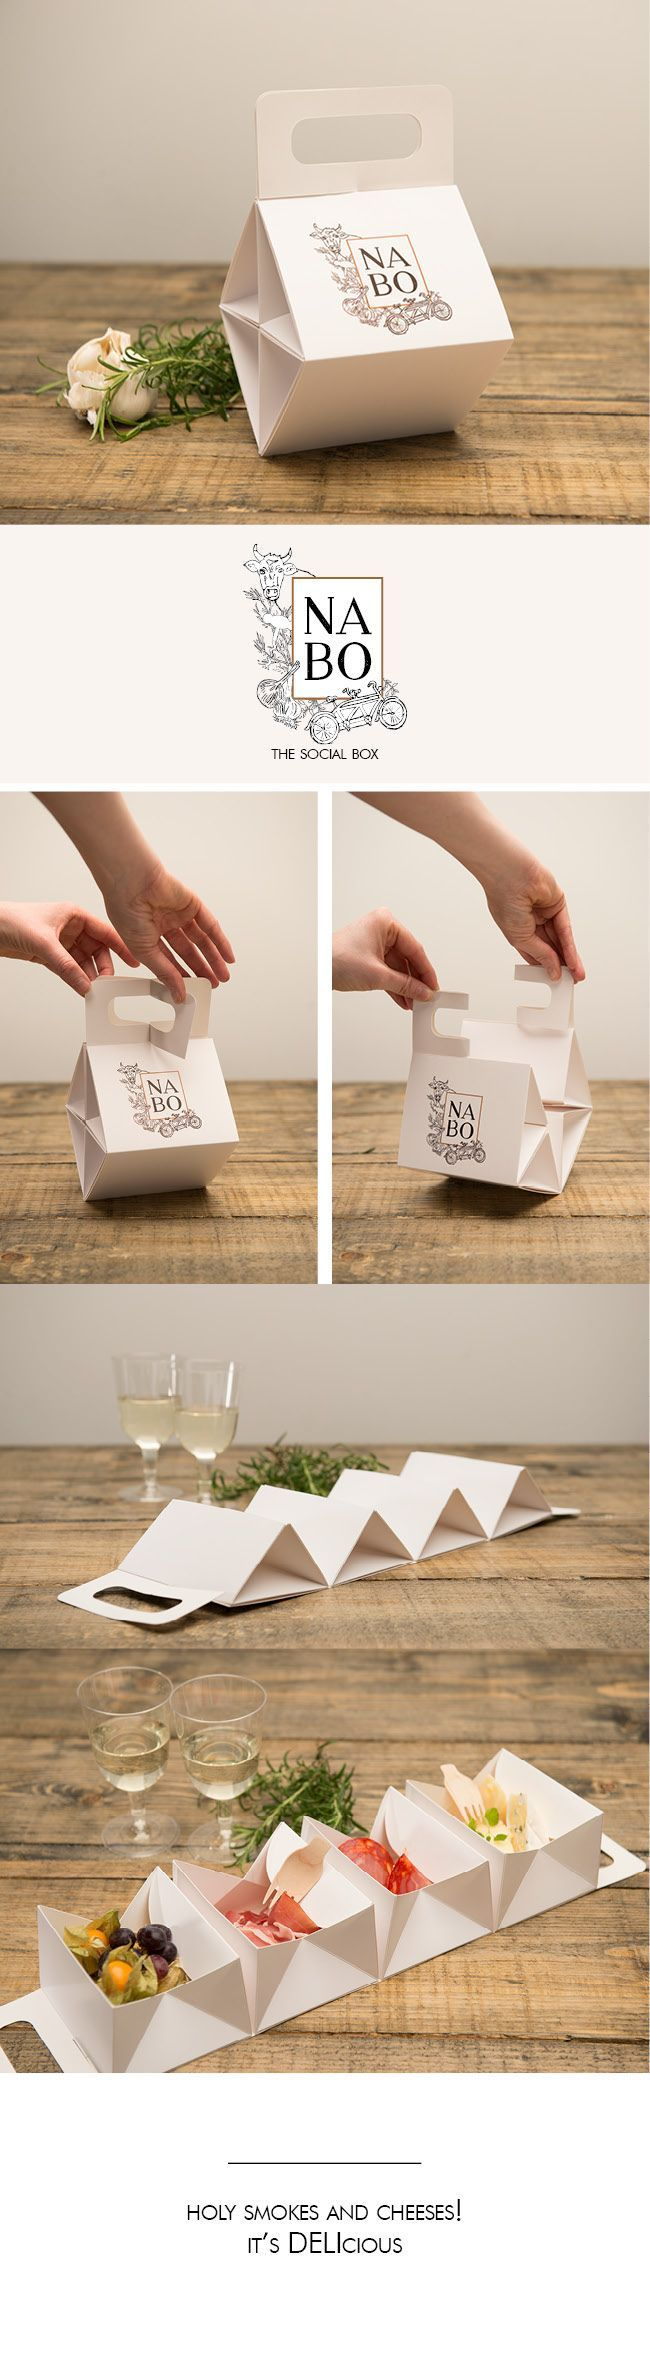 best images about carton packaging on pinterest packaging